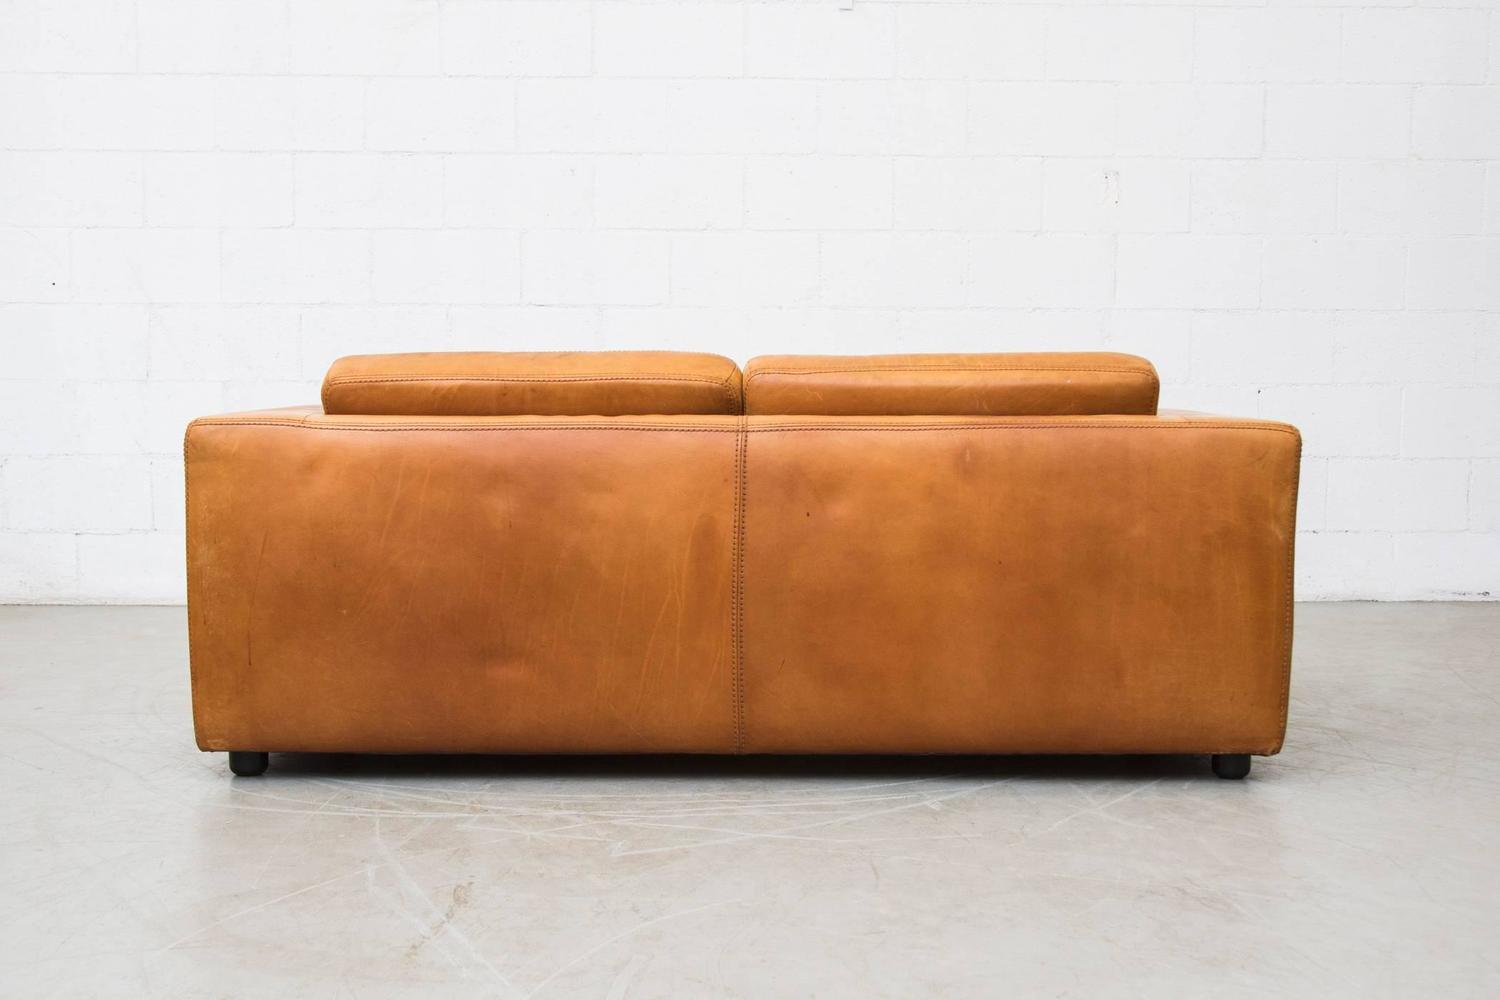 Natural Leather Two Cushion Sofa by Durlet at 1stdibs : C8A5351z from www.1stdibs.com size 1500 x 1000 jpeg 73kB